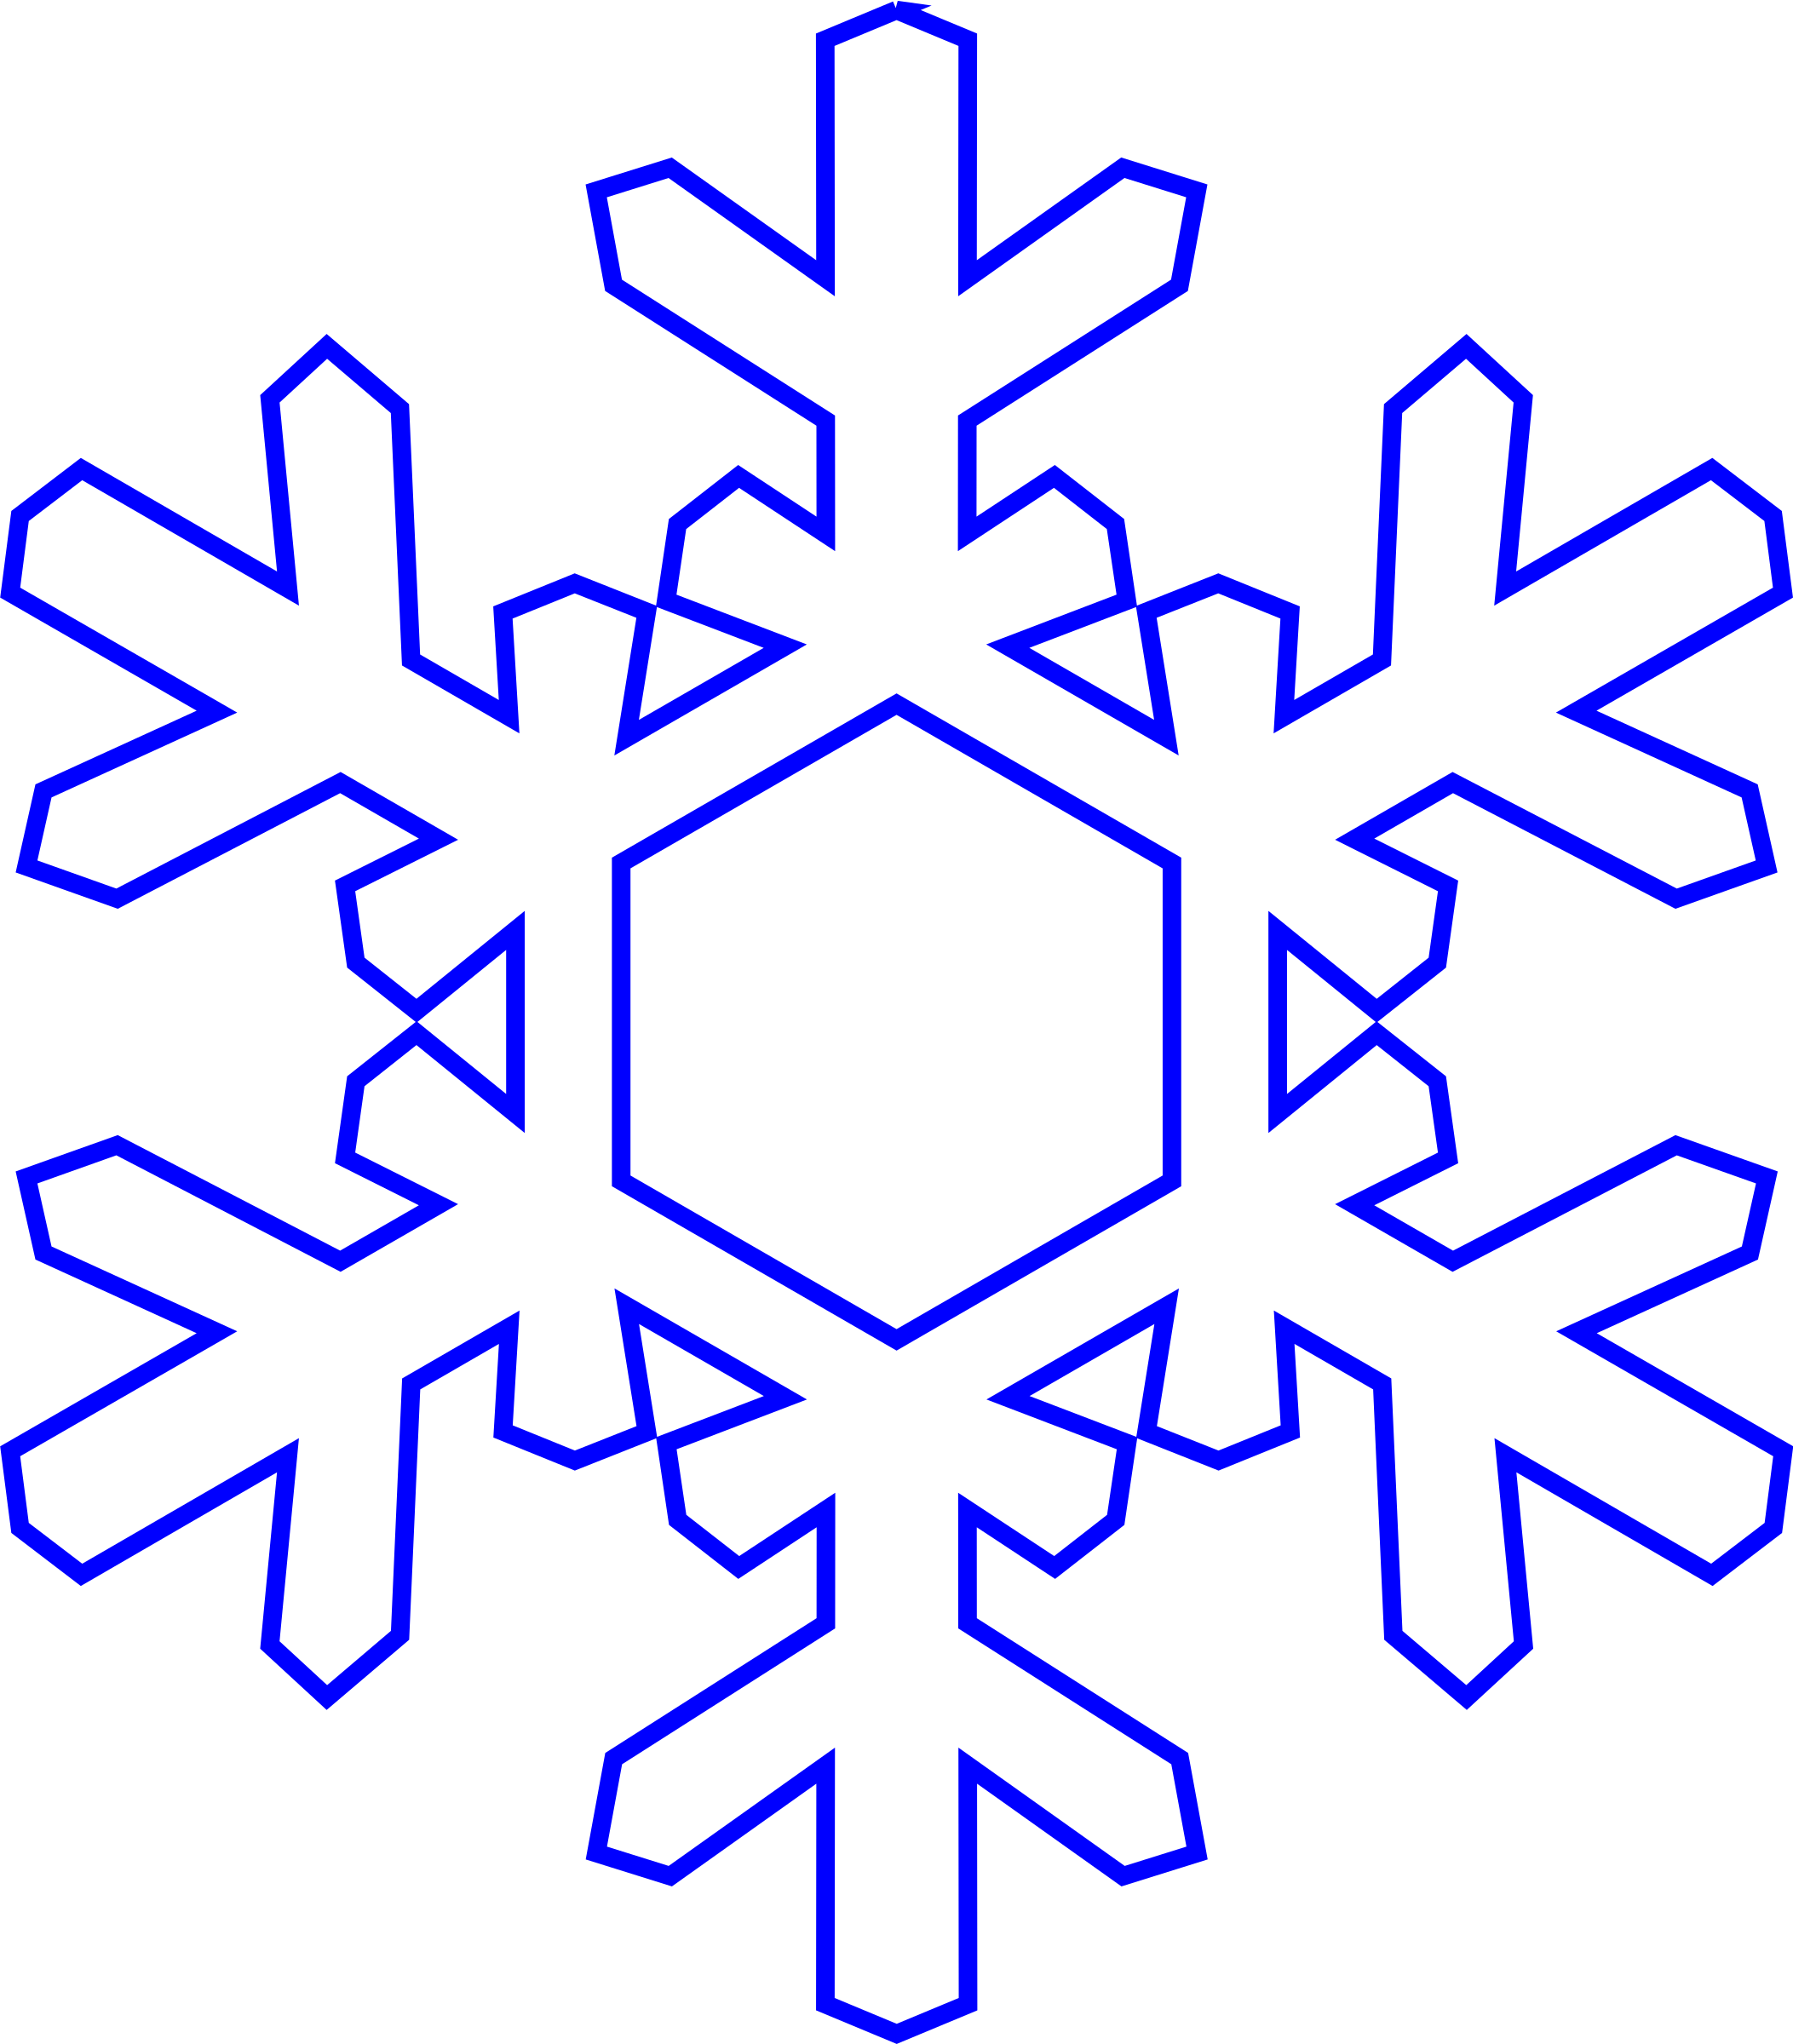 Ice and snowflake clipart svg transparent stock Real Snowflake Cliparts | jokingart.com Snowflake Clipart svg transparent stock